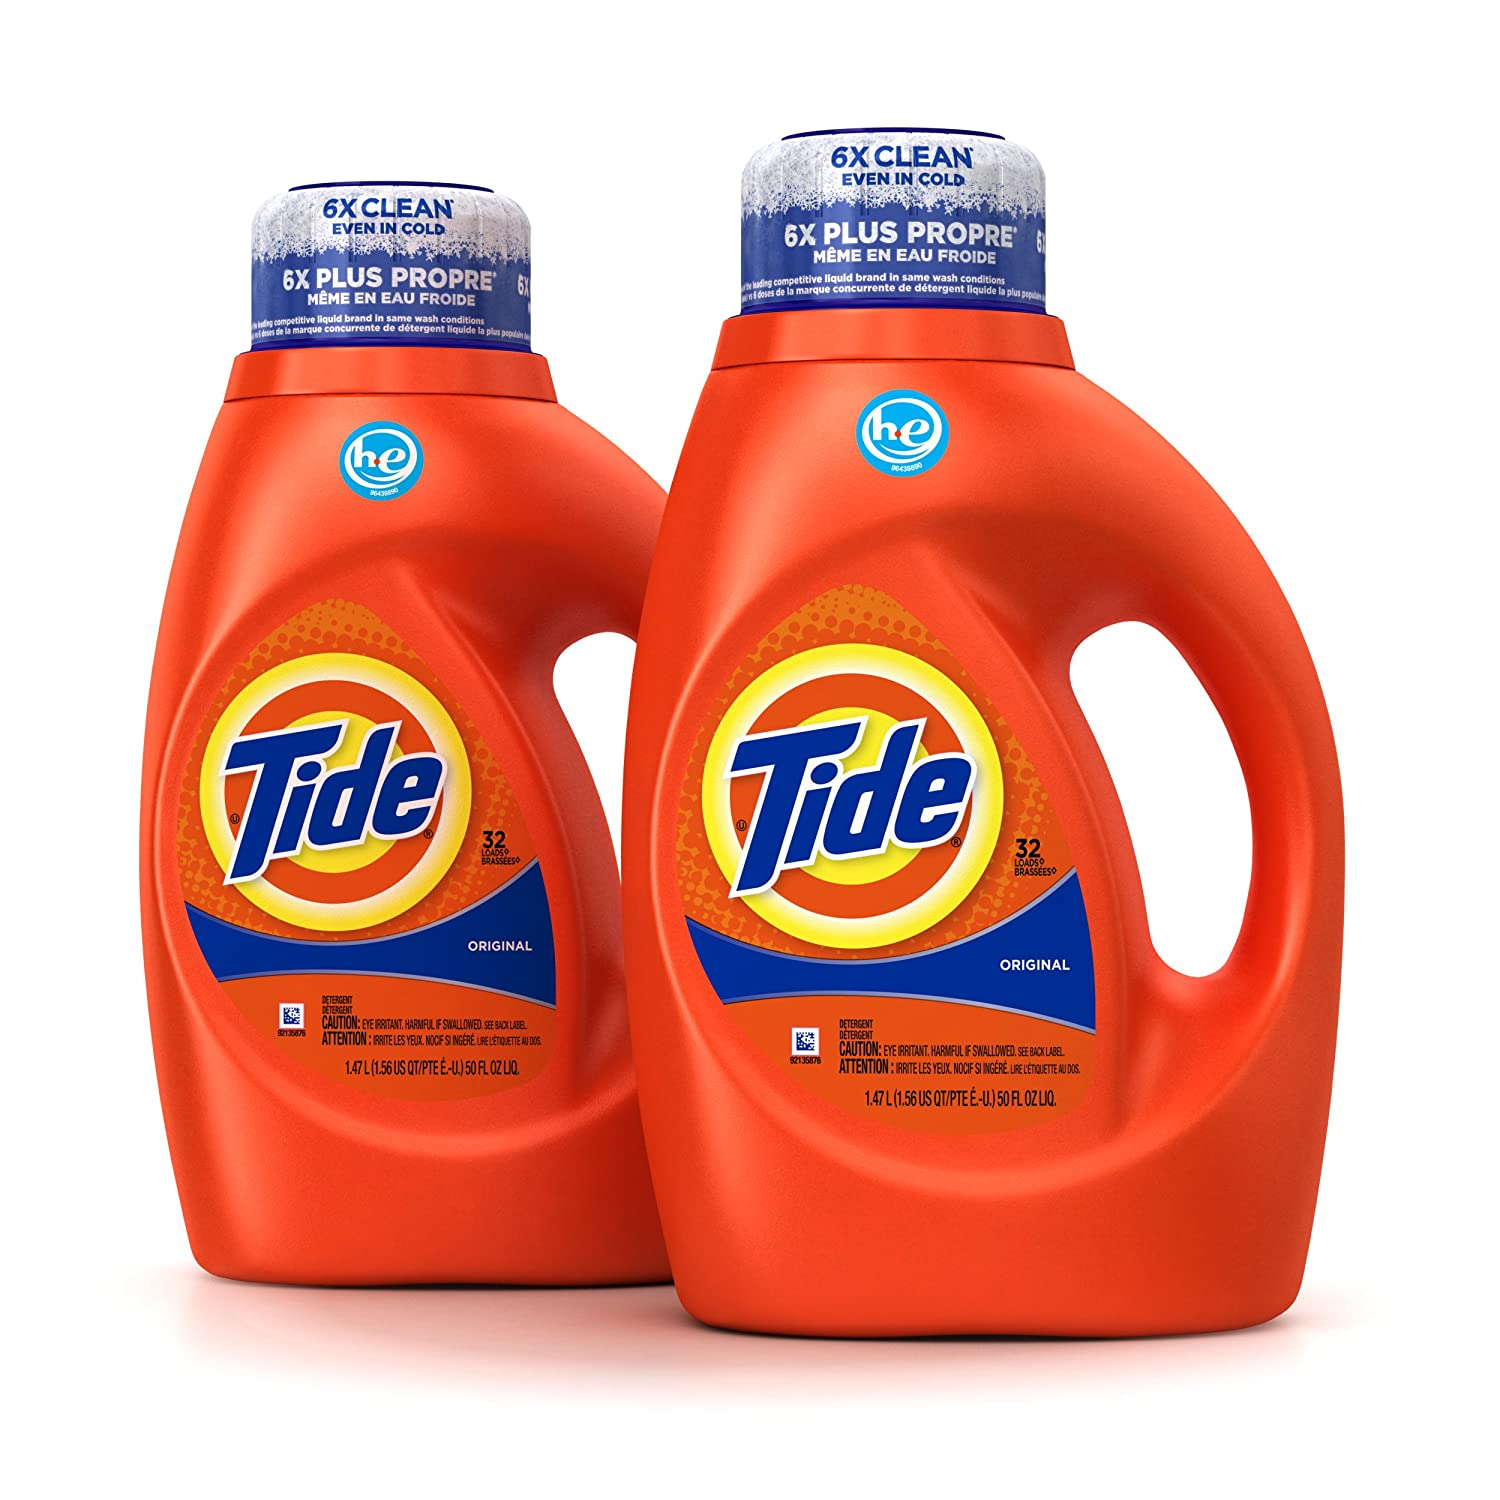 marketing and tide laundry detergent Marketing analytics: case  you have been promoted to vice president of marketing for  such as procter & gamble with brands such as tide laundry detergent.